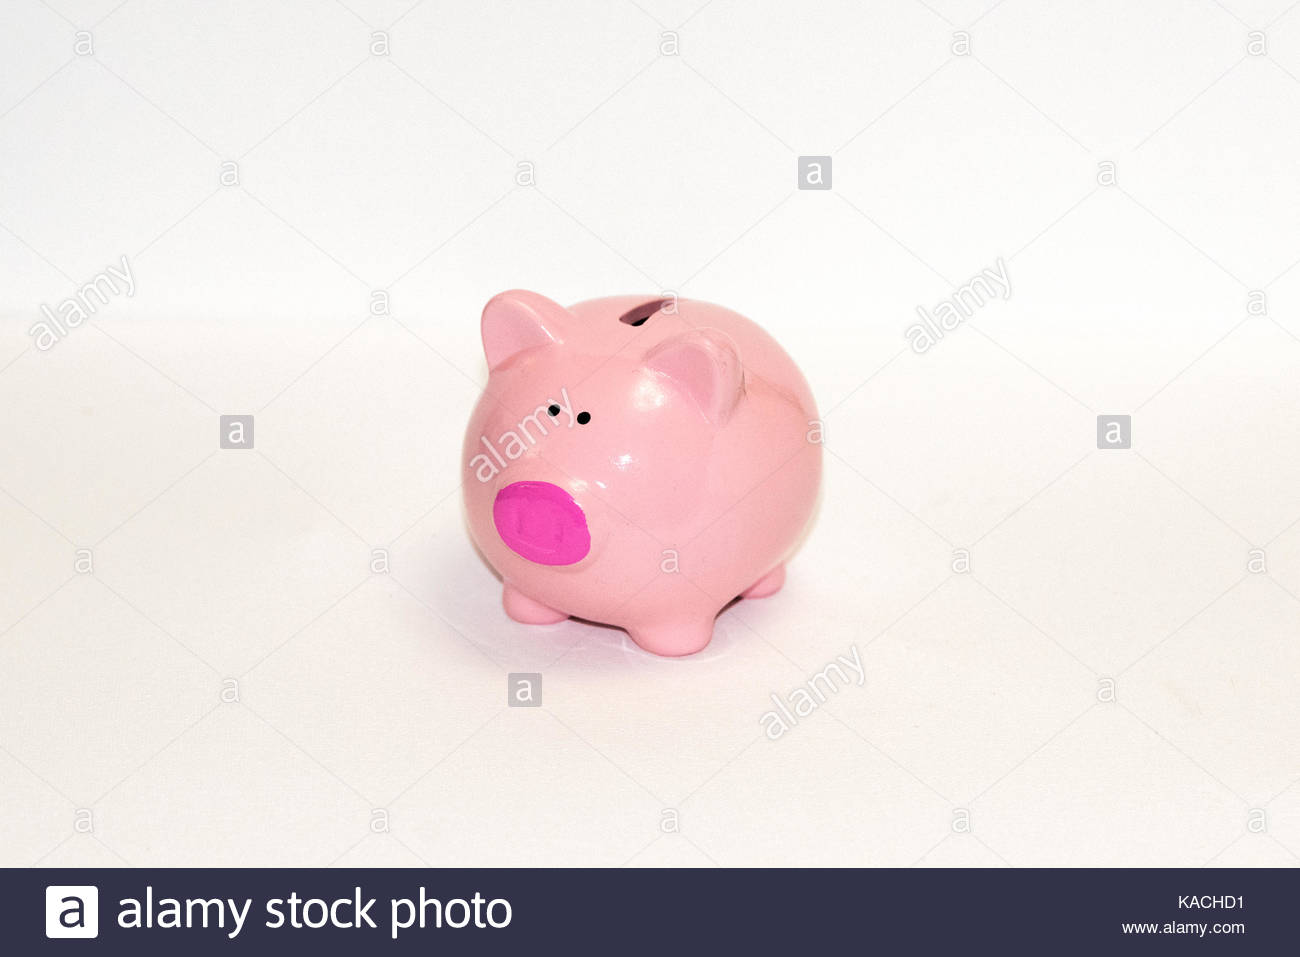 pink piggy bank in a white background - Stock Image